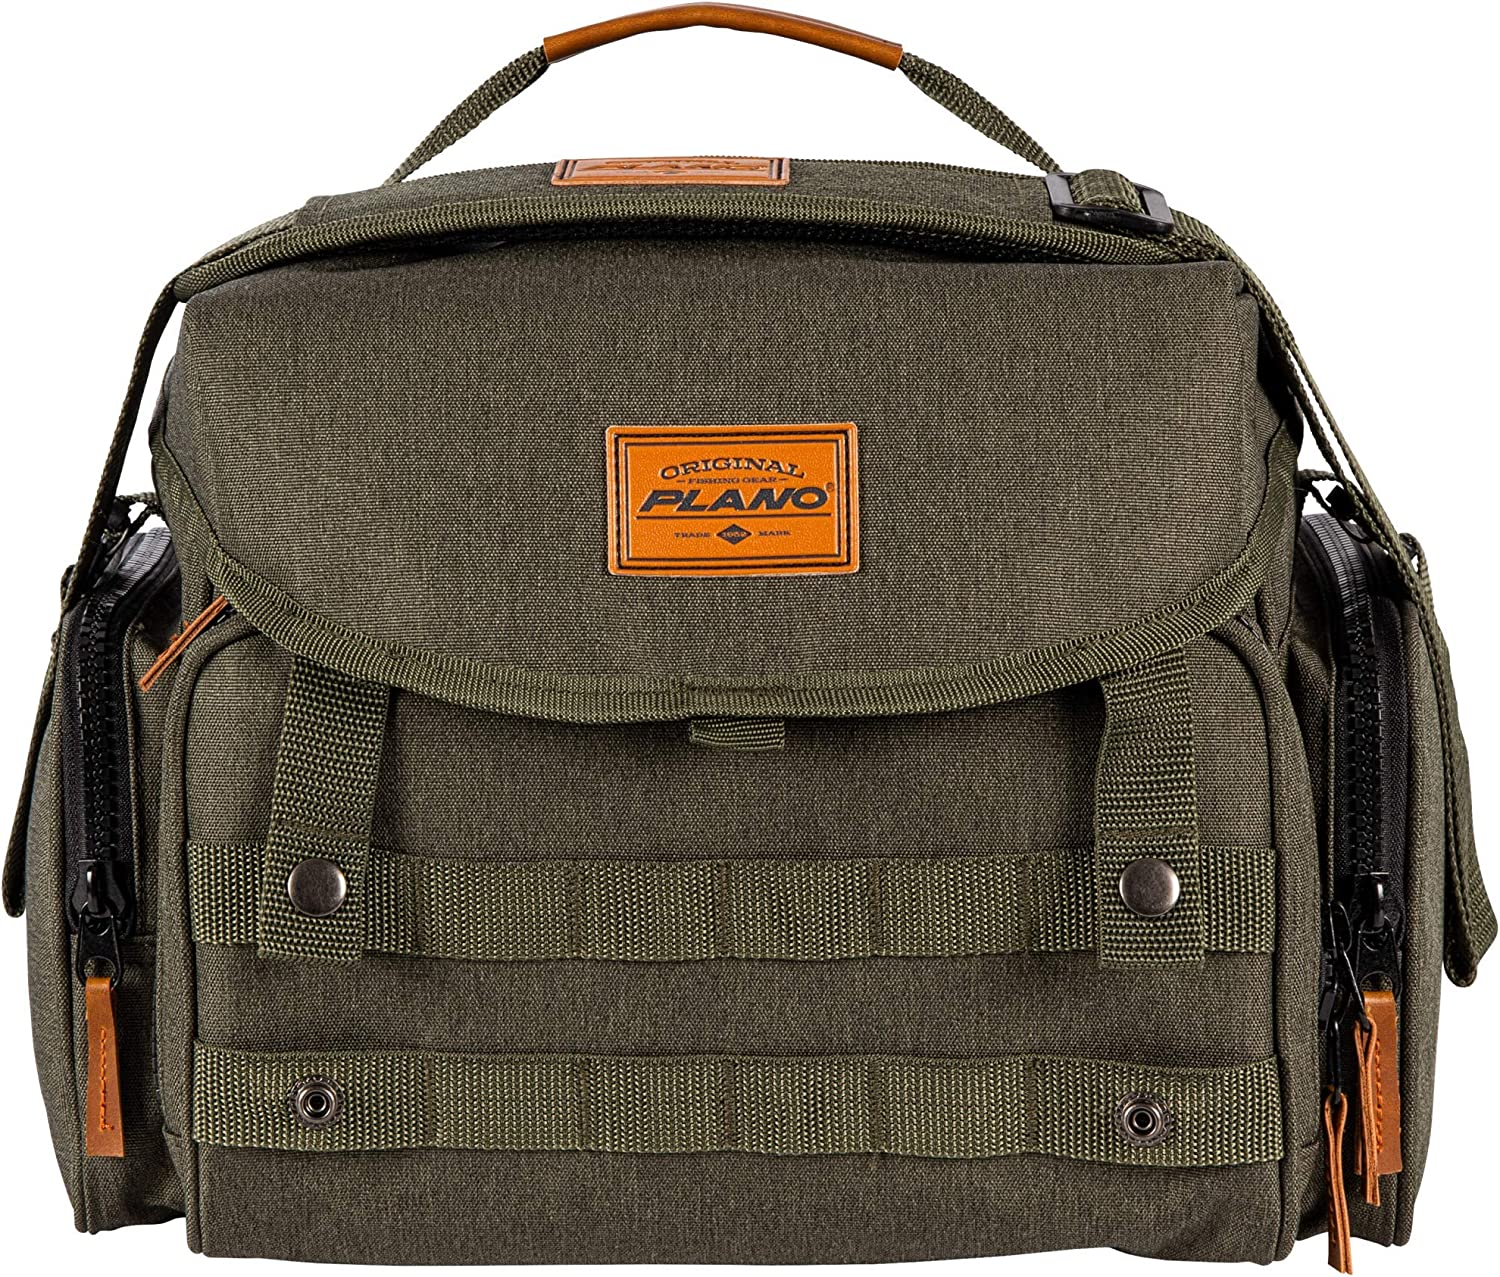 Plano A-Series 2.0 Tackle Bag, Includes Four 3600 Tackle Storage Stows